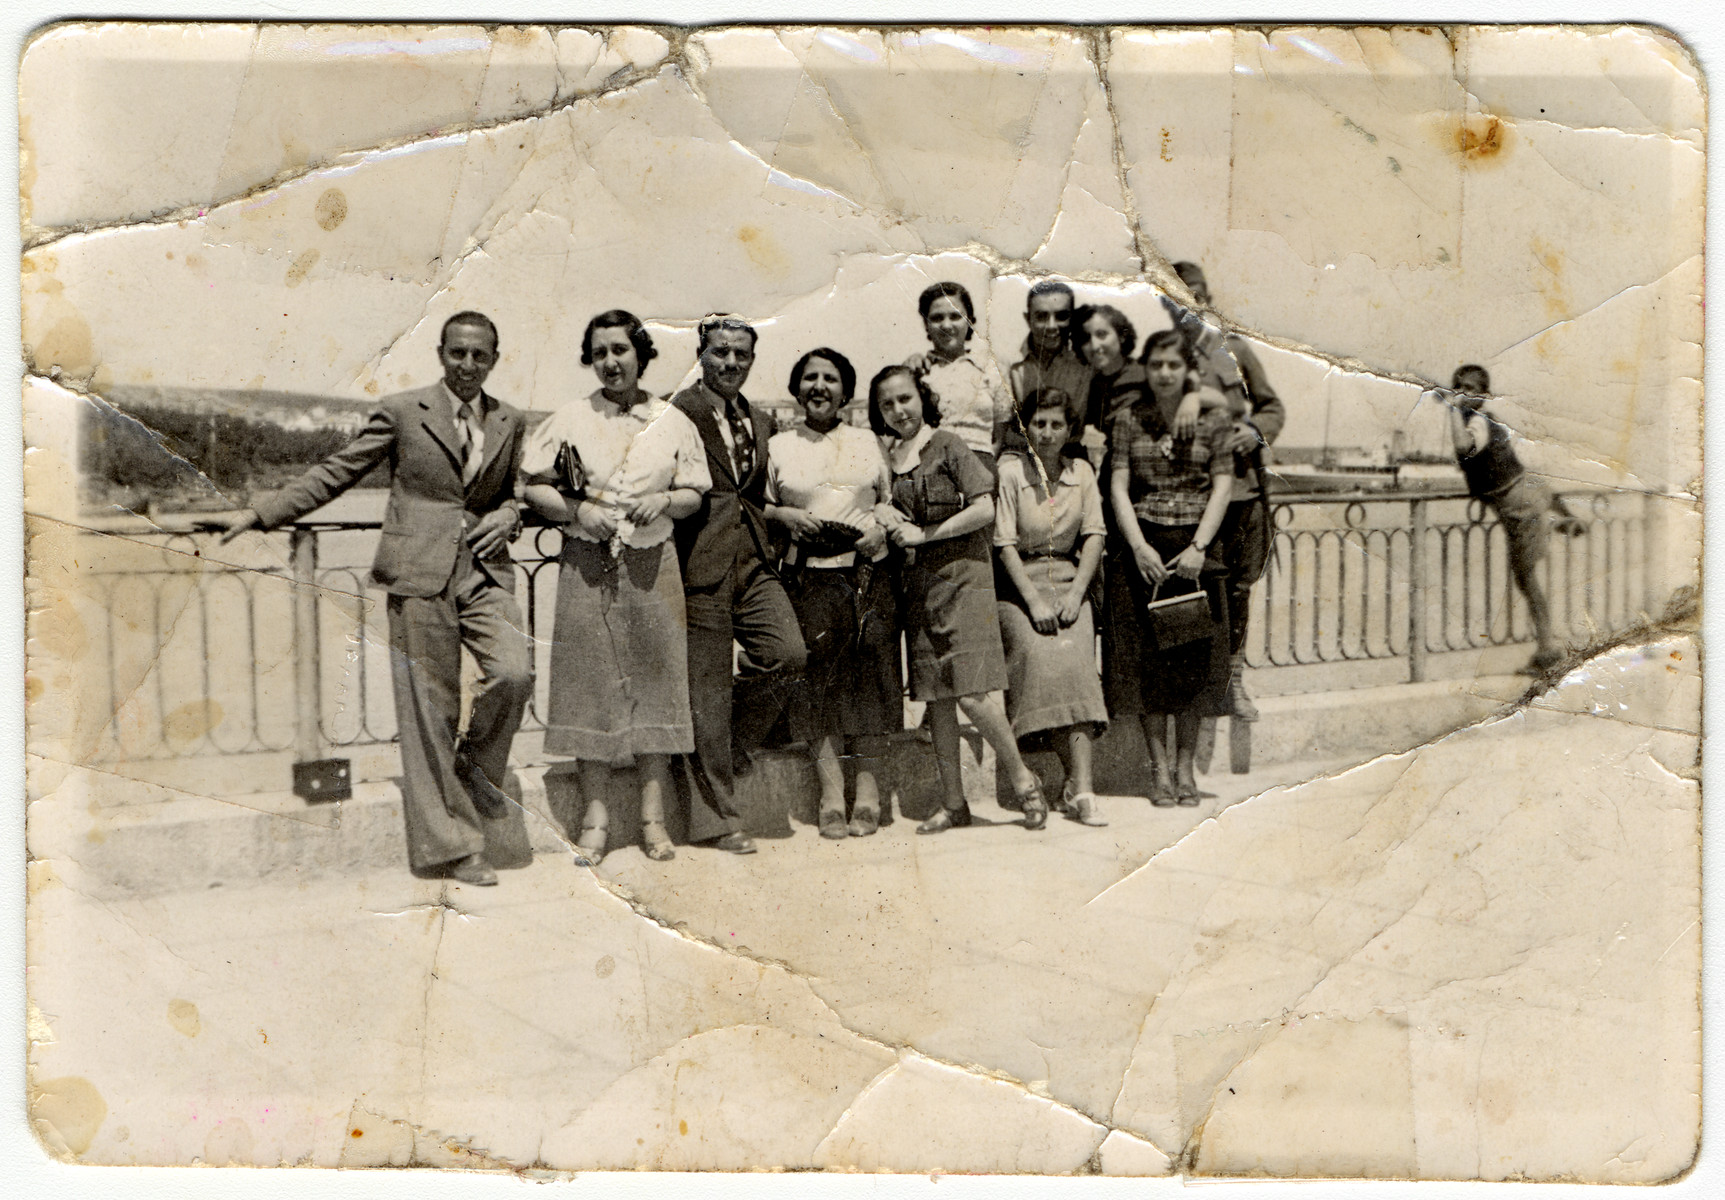 A Greek Jewish family poses next to a railing overlooking the Euboean Gulf.  Among those pictured is Claire Jesurun.